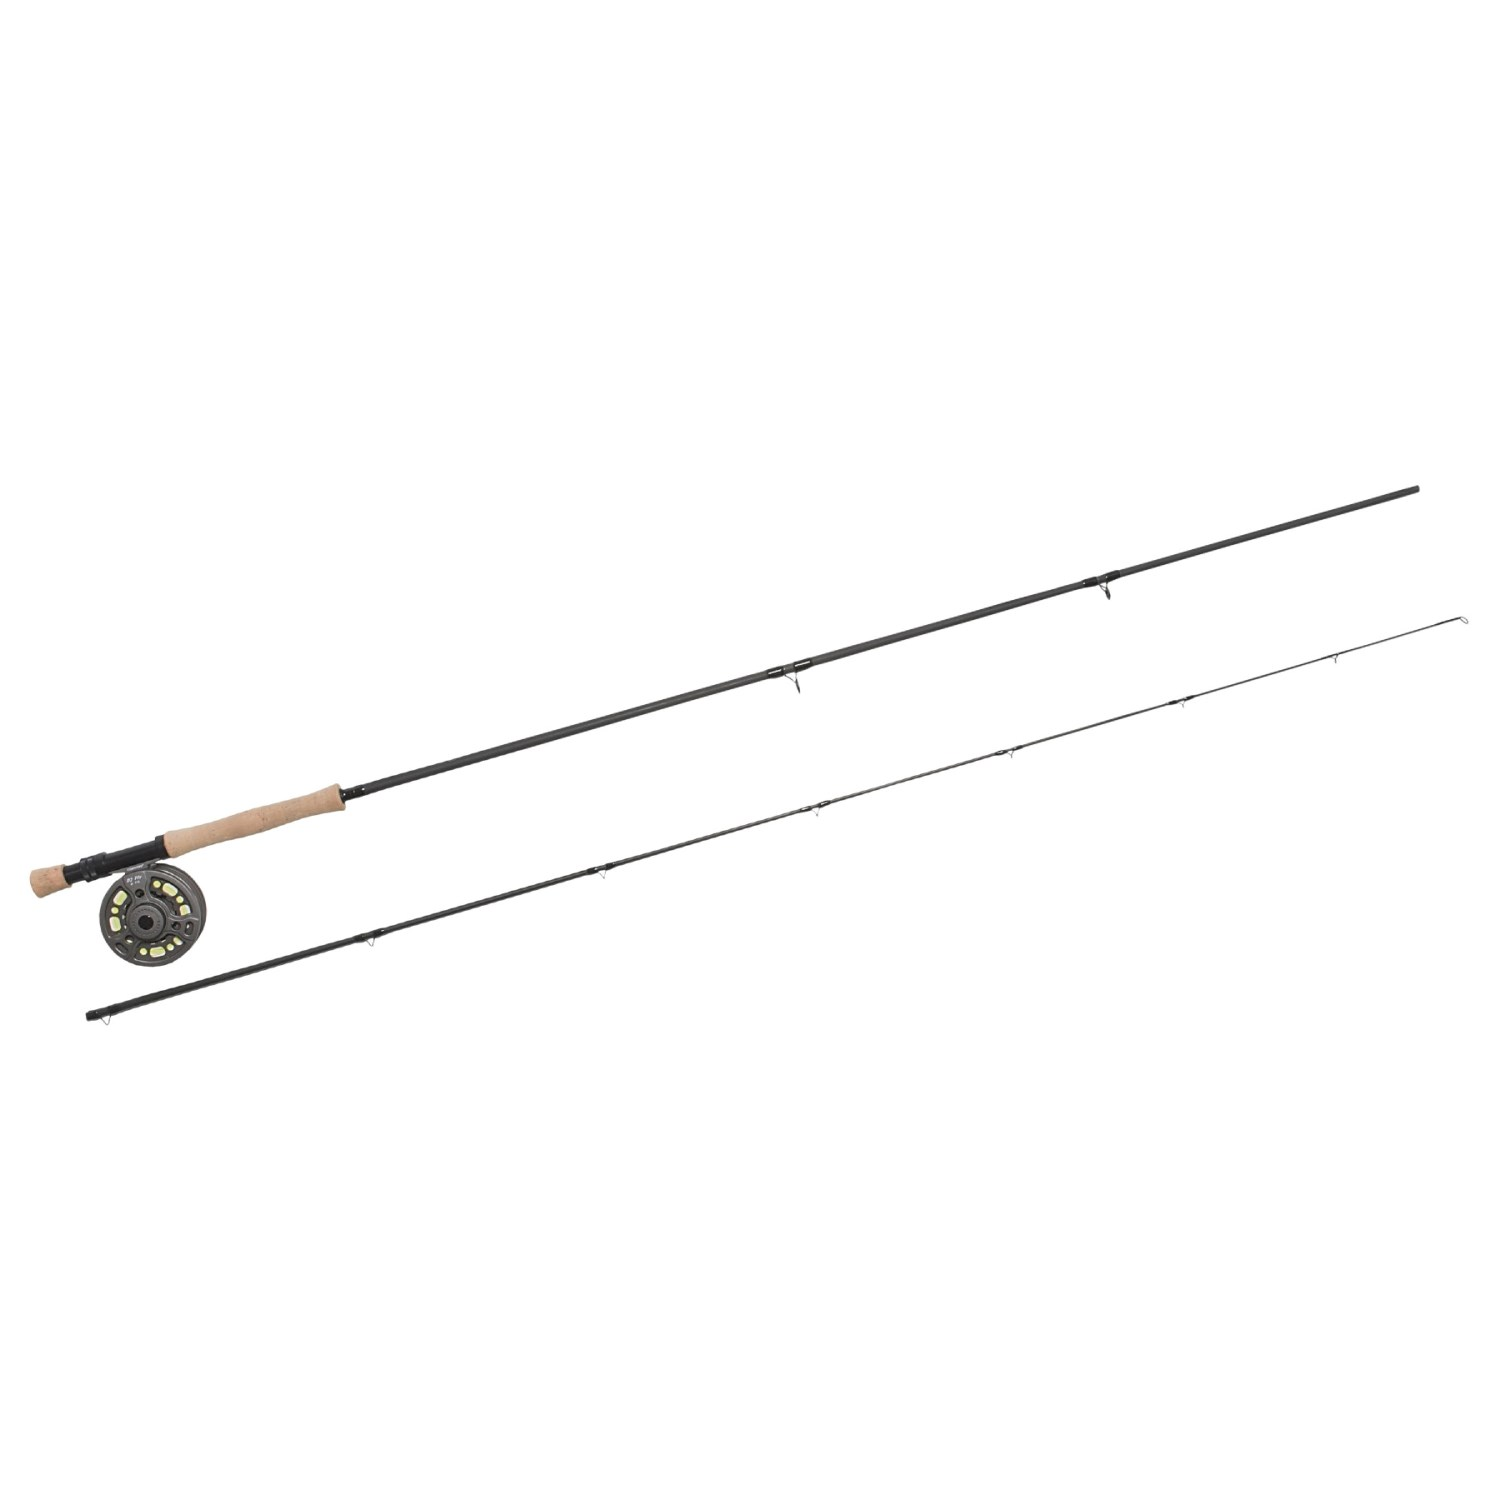 Cortland Fly Fishing Combo 2 Piece Rod With Pro Cast